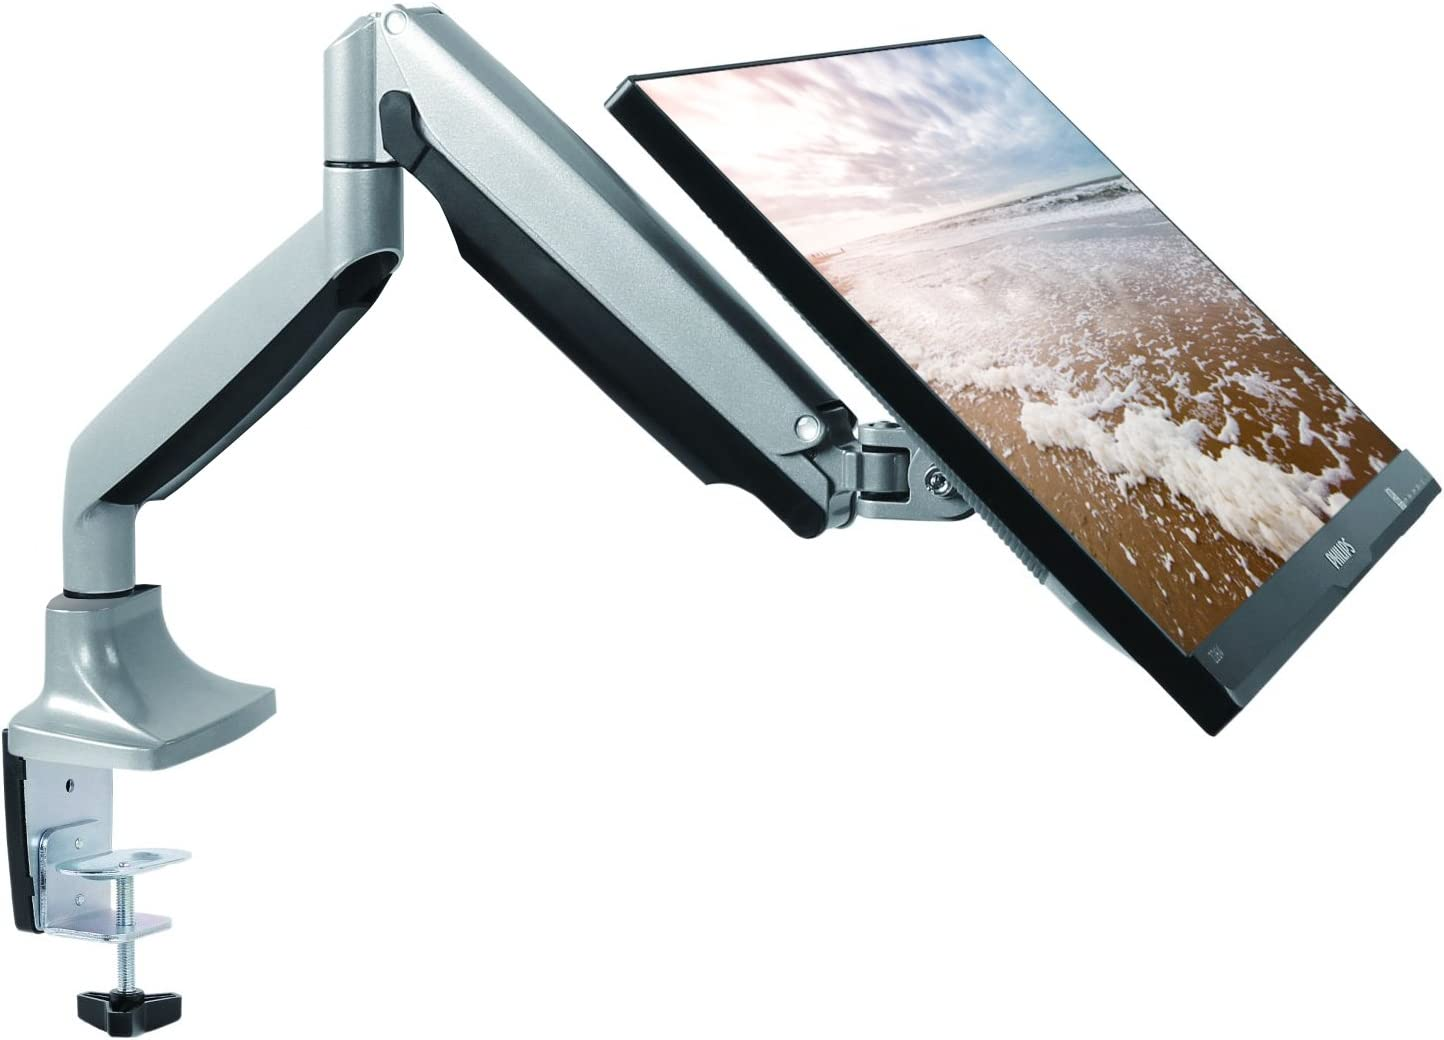 "TechOrbits Monitor Mount Stand - SmartSWIVEL - Computer Screen Desk Mount Arm - Full Motion Swivel Articulating Gas Springs - Universal Fit for 13"" - 30"" Screens Vesa Mount"